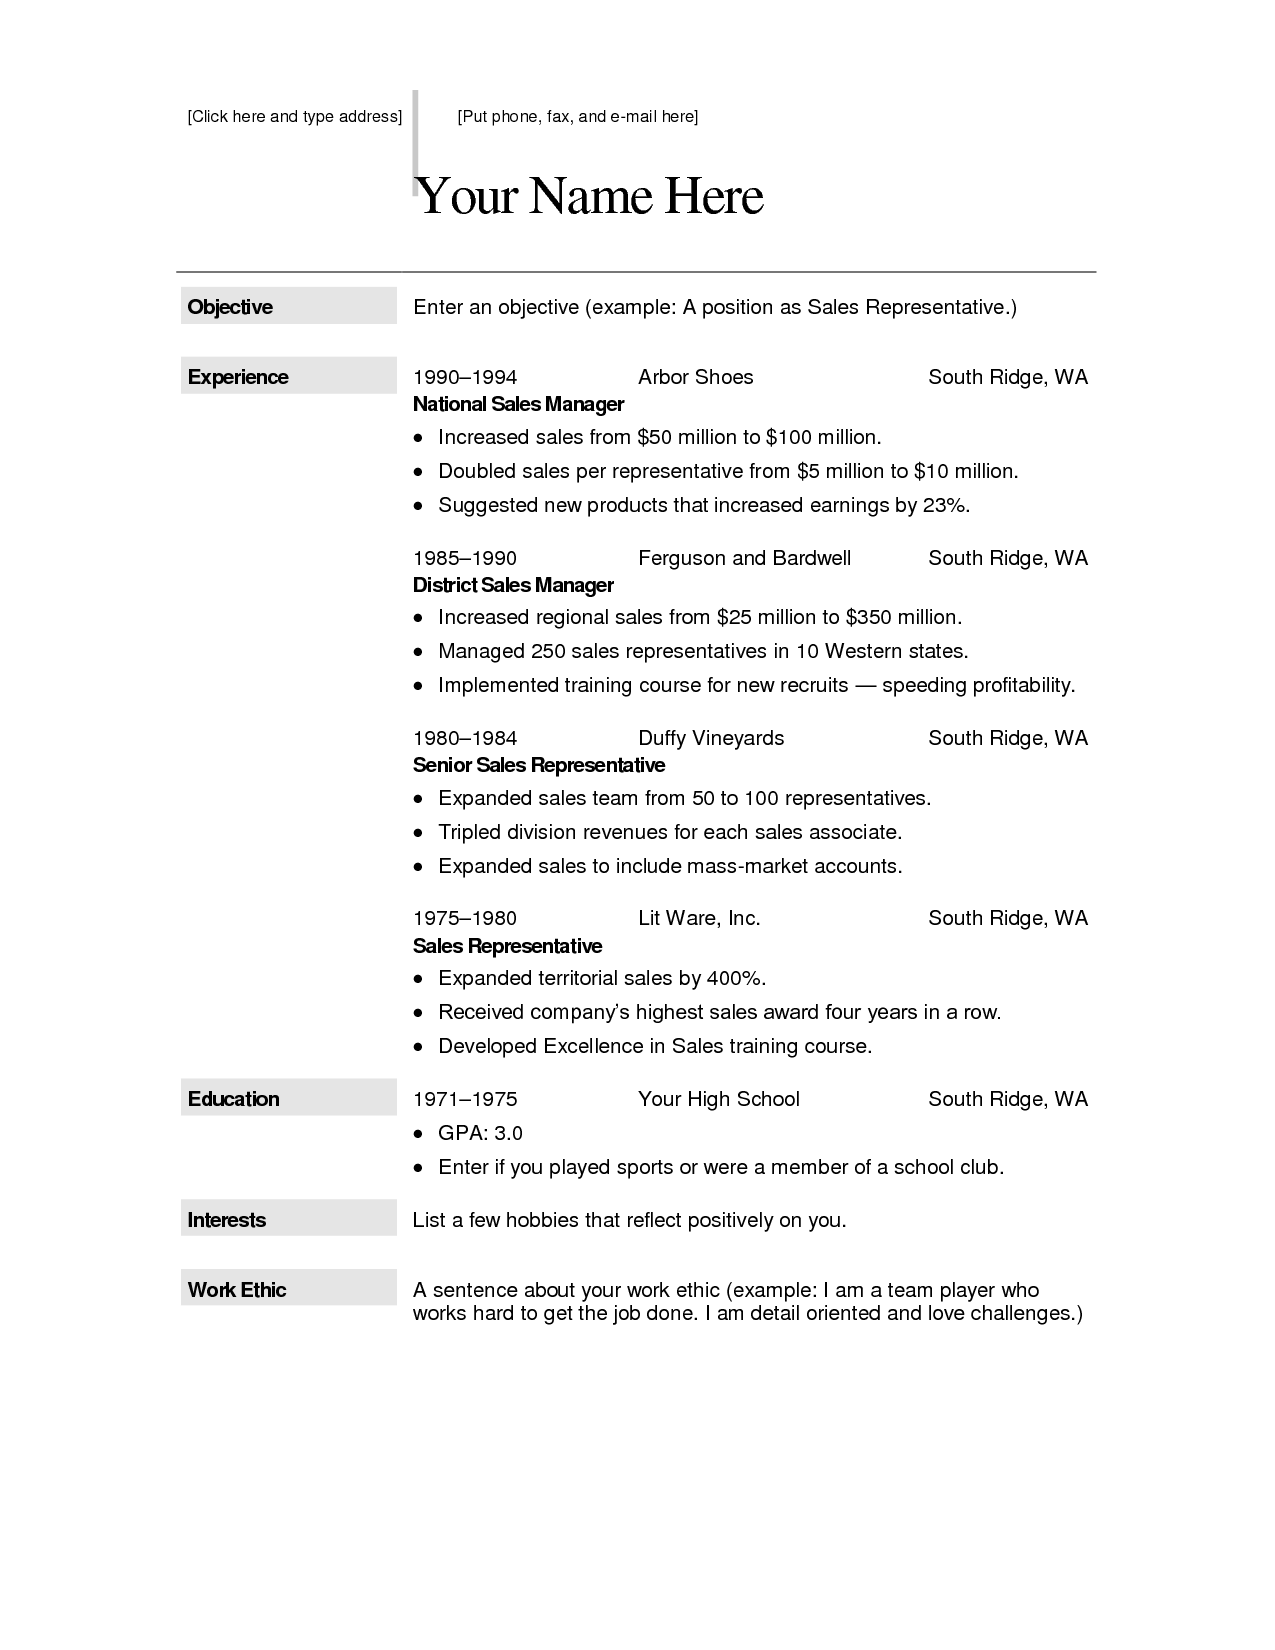 Example Of A Simple Resume Free Creative Resume Templates For Macfree Creative Resume